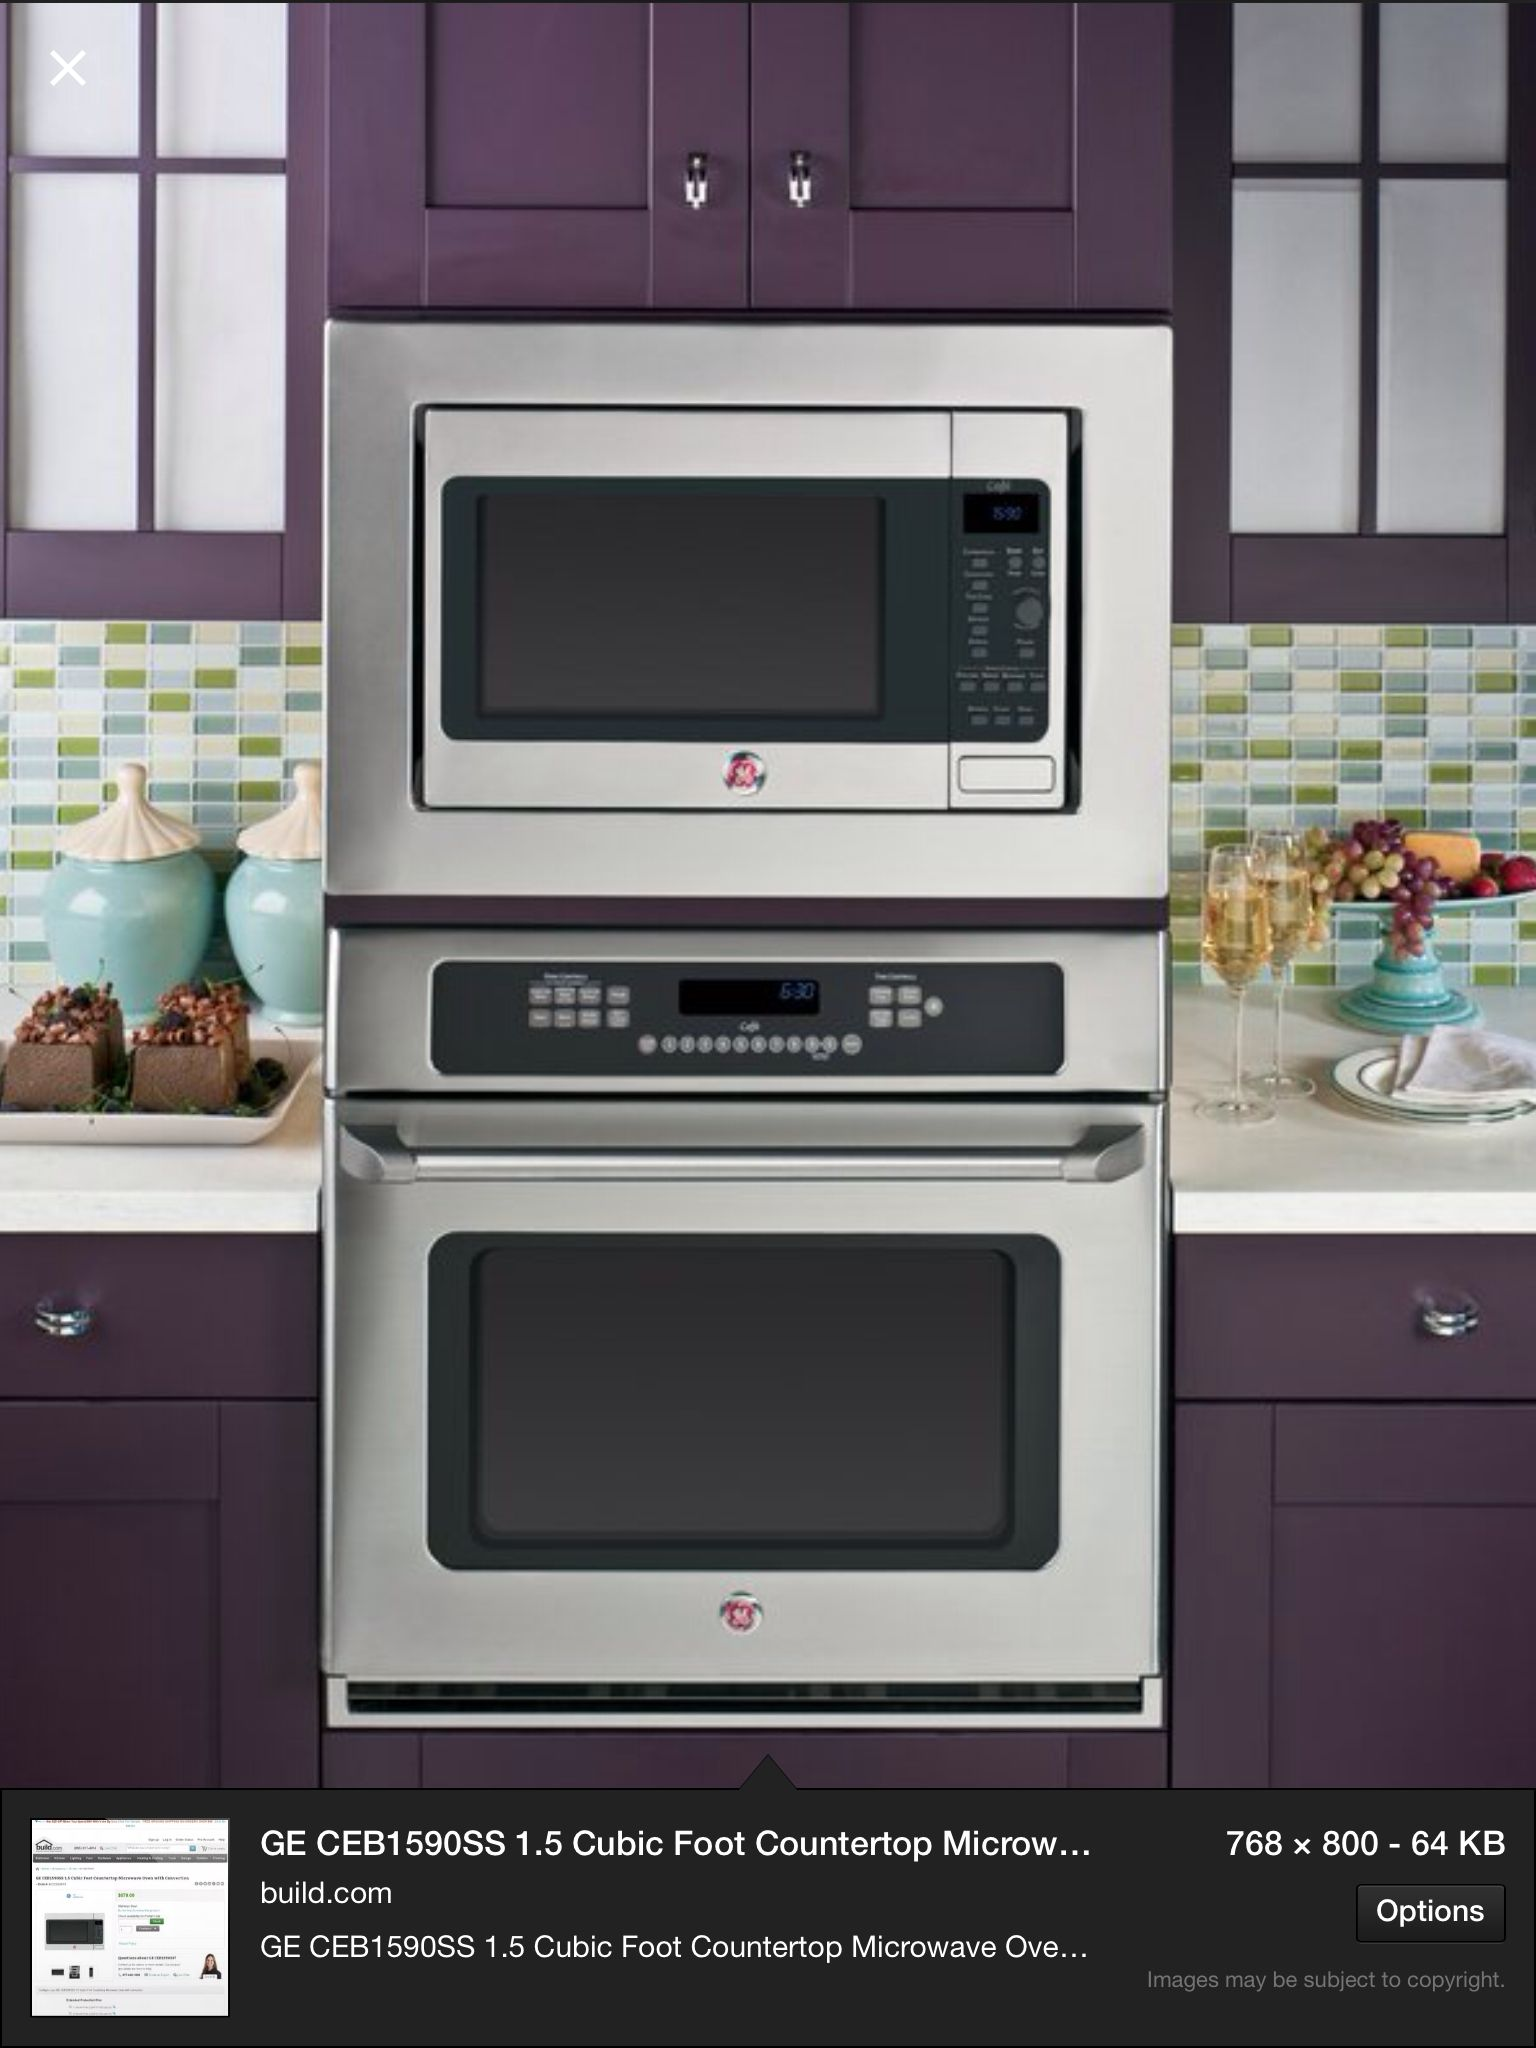 Convection oven and convection microwave oven combination